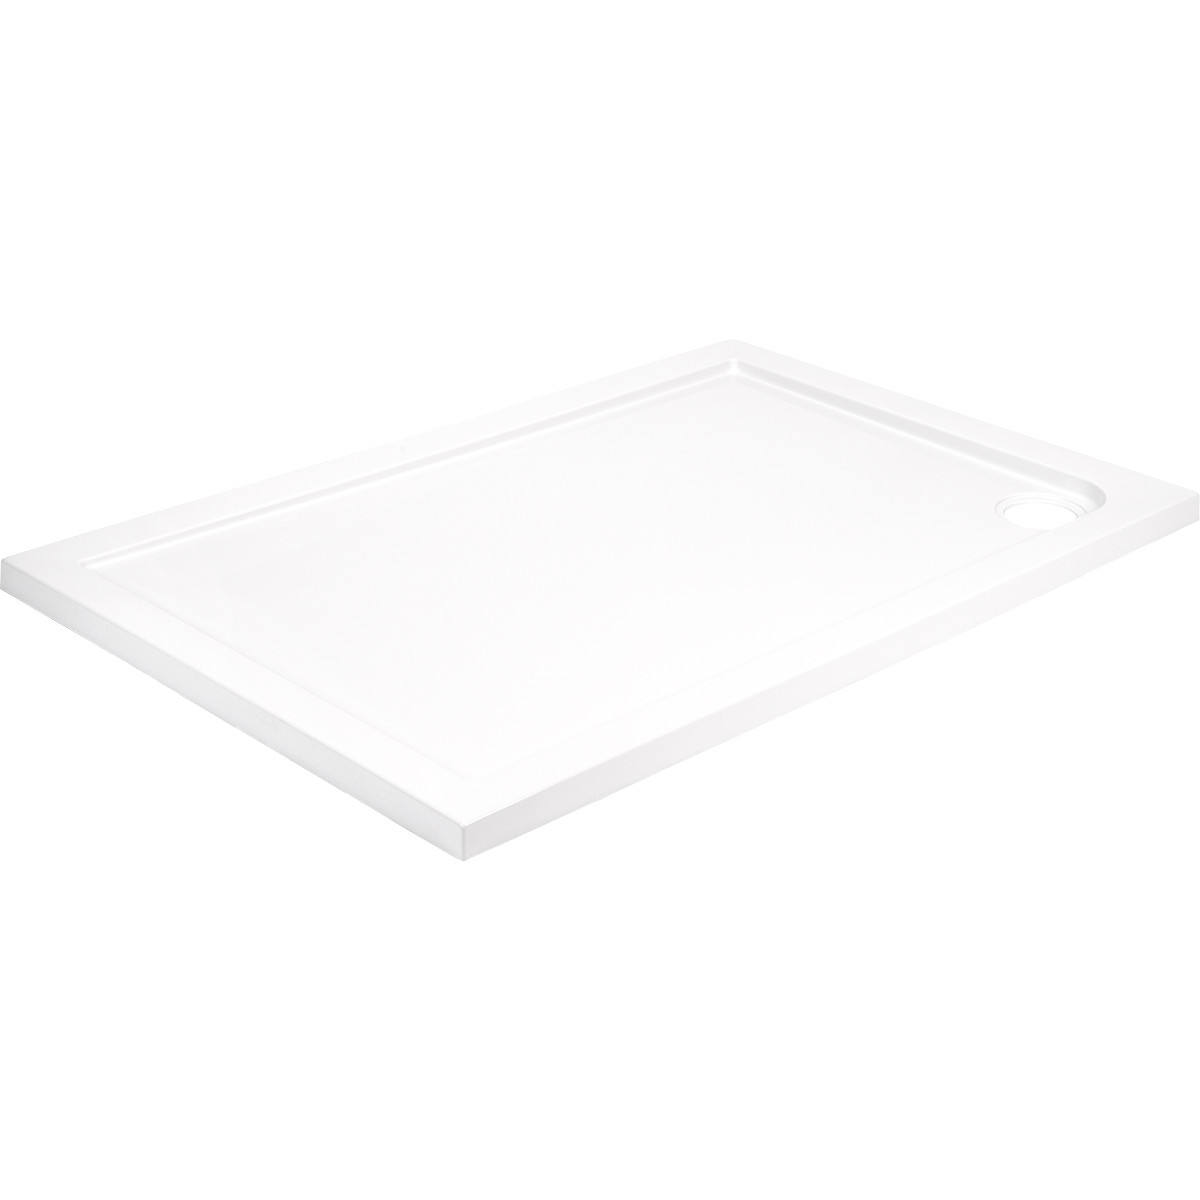 40mm Pearlstone 1000 x 700 Rectangular Shower Tray